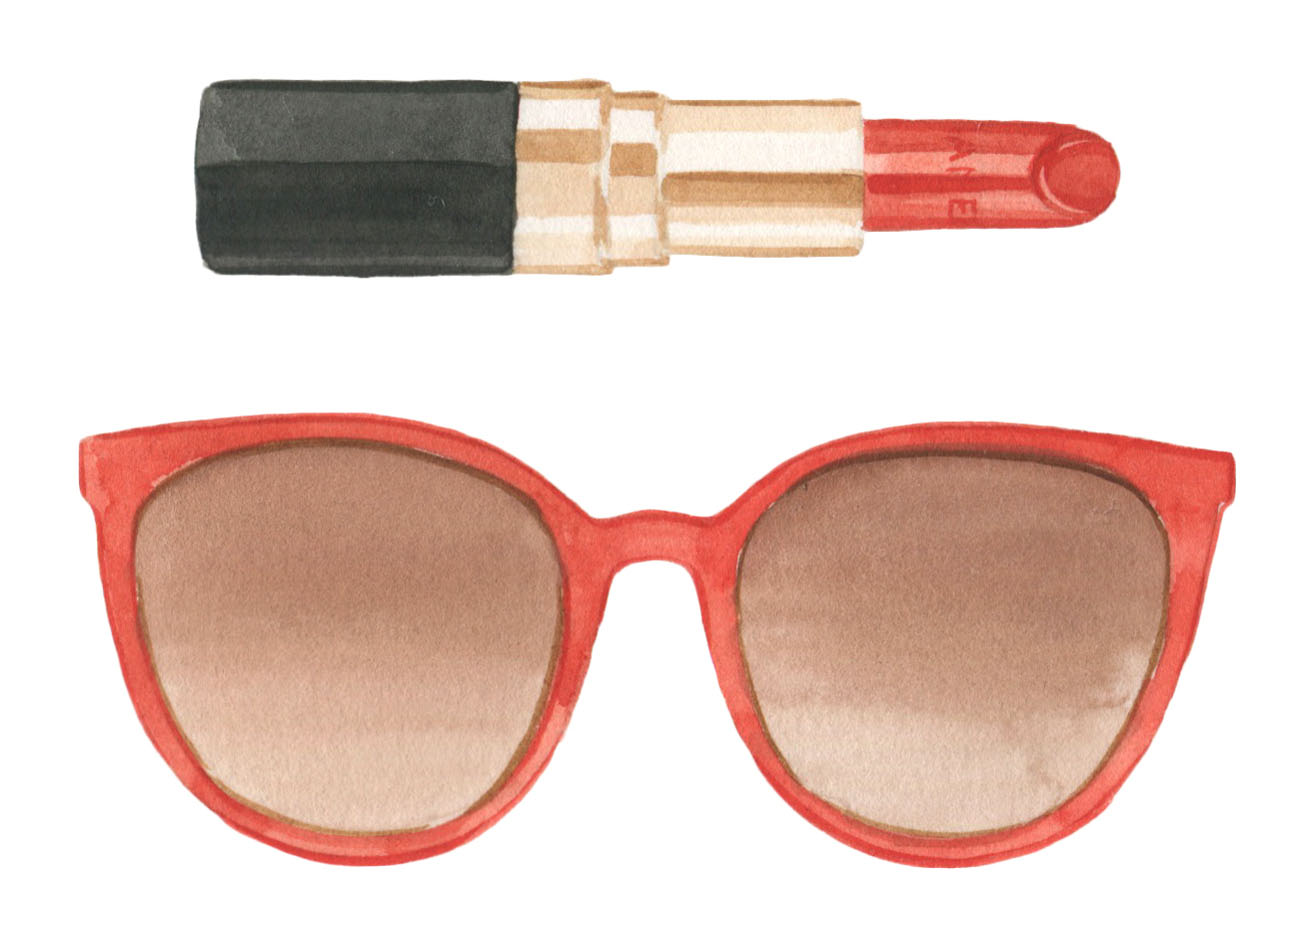 How to Match Your Sunglasses to Your Lipstick